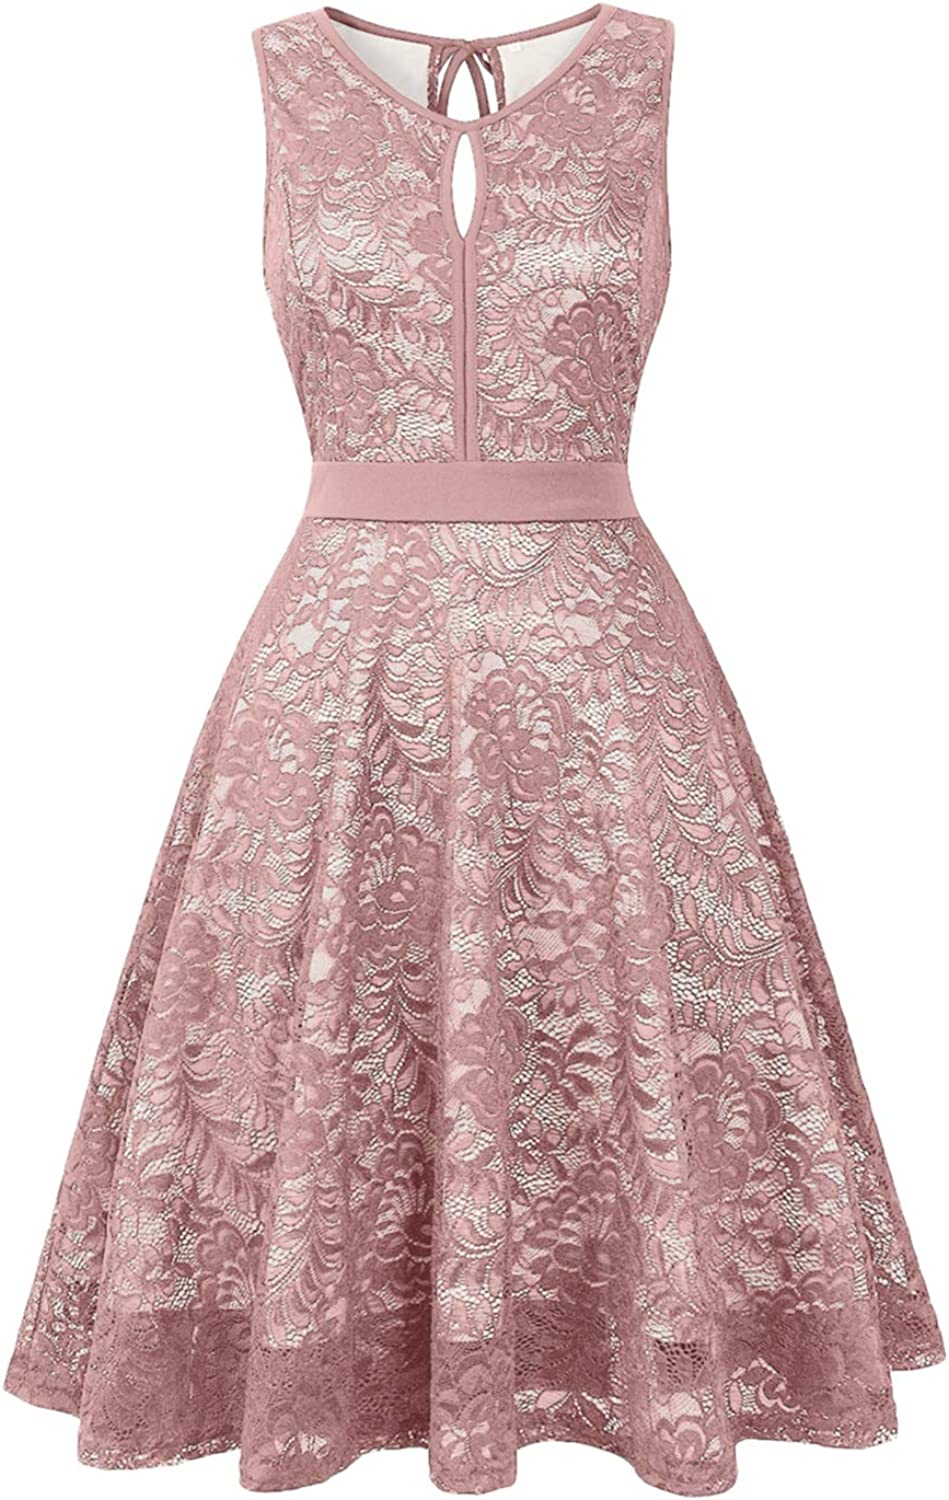 Women Vintage Floral Lace Bridesmaid Dress 3/4 Sleeve/Sleeveless Cocktail Party Swing Dresses